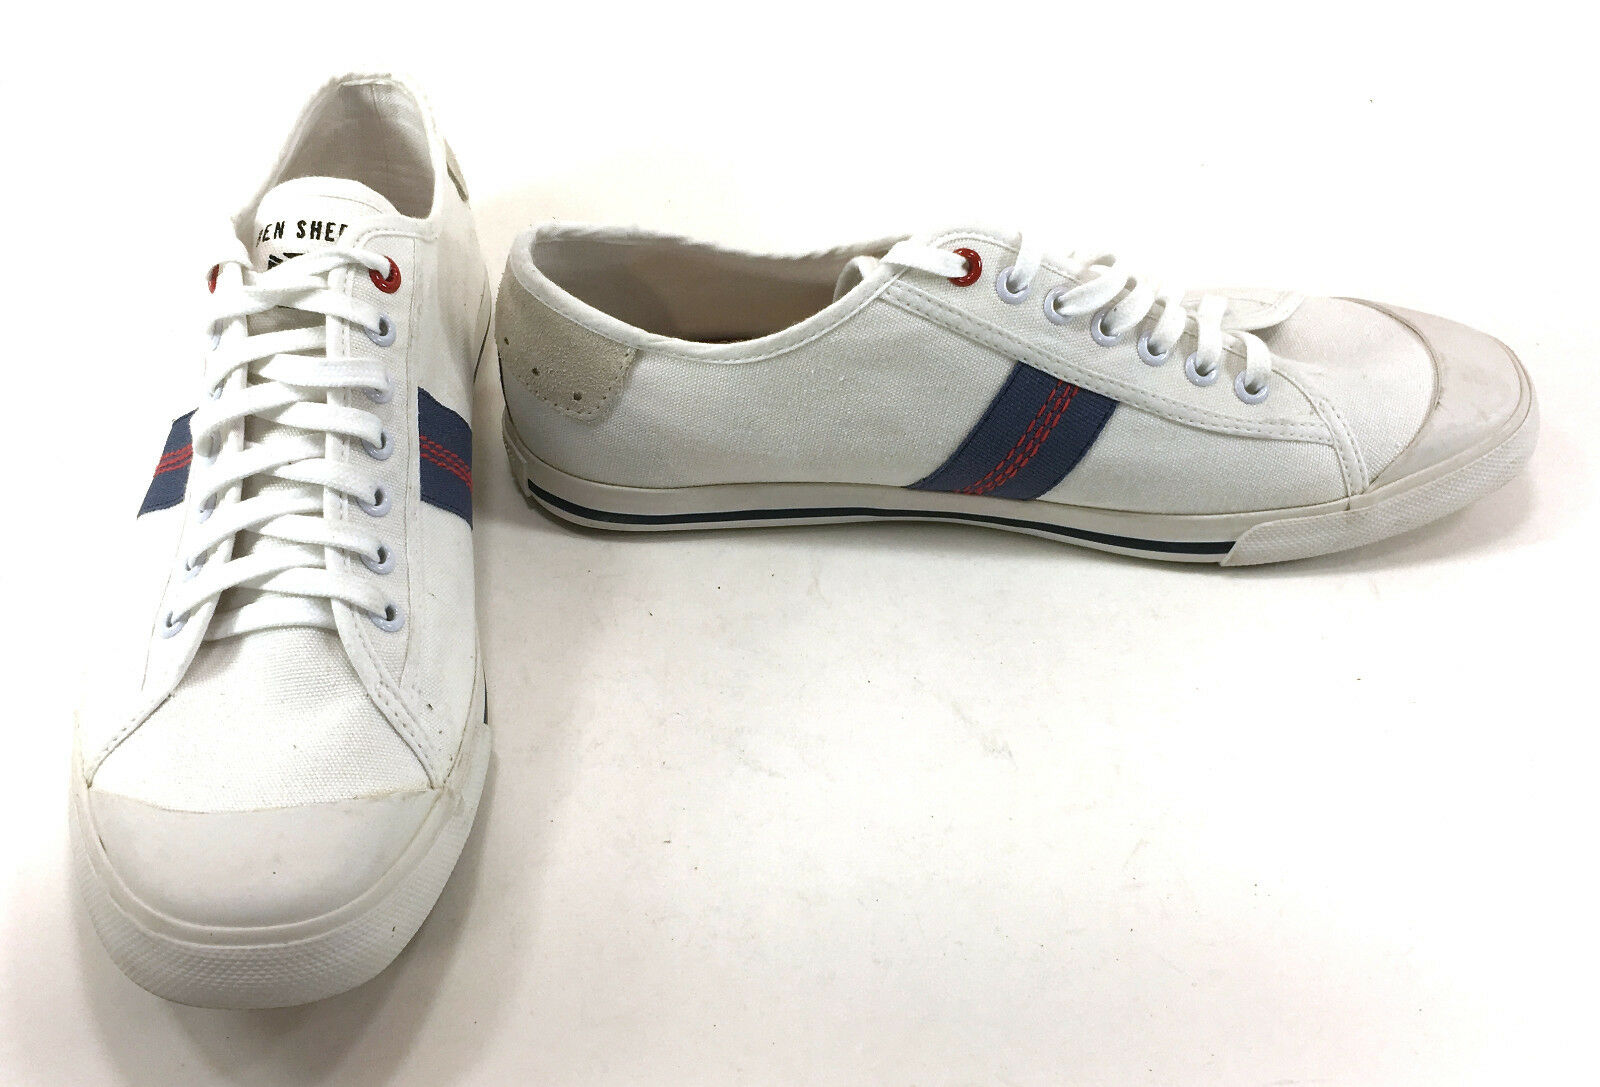 Ben Sherman shoes Canvas Lo White bluee Red Sneakers Size 11